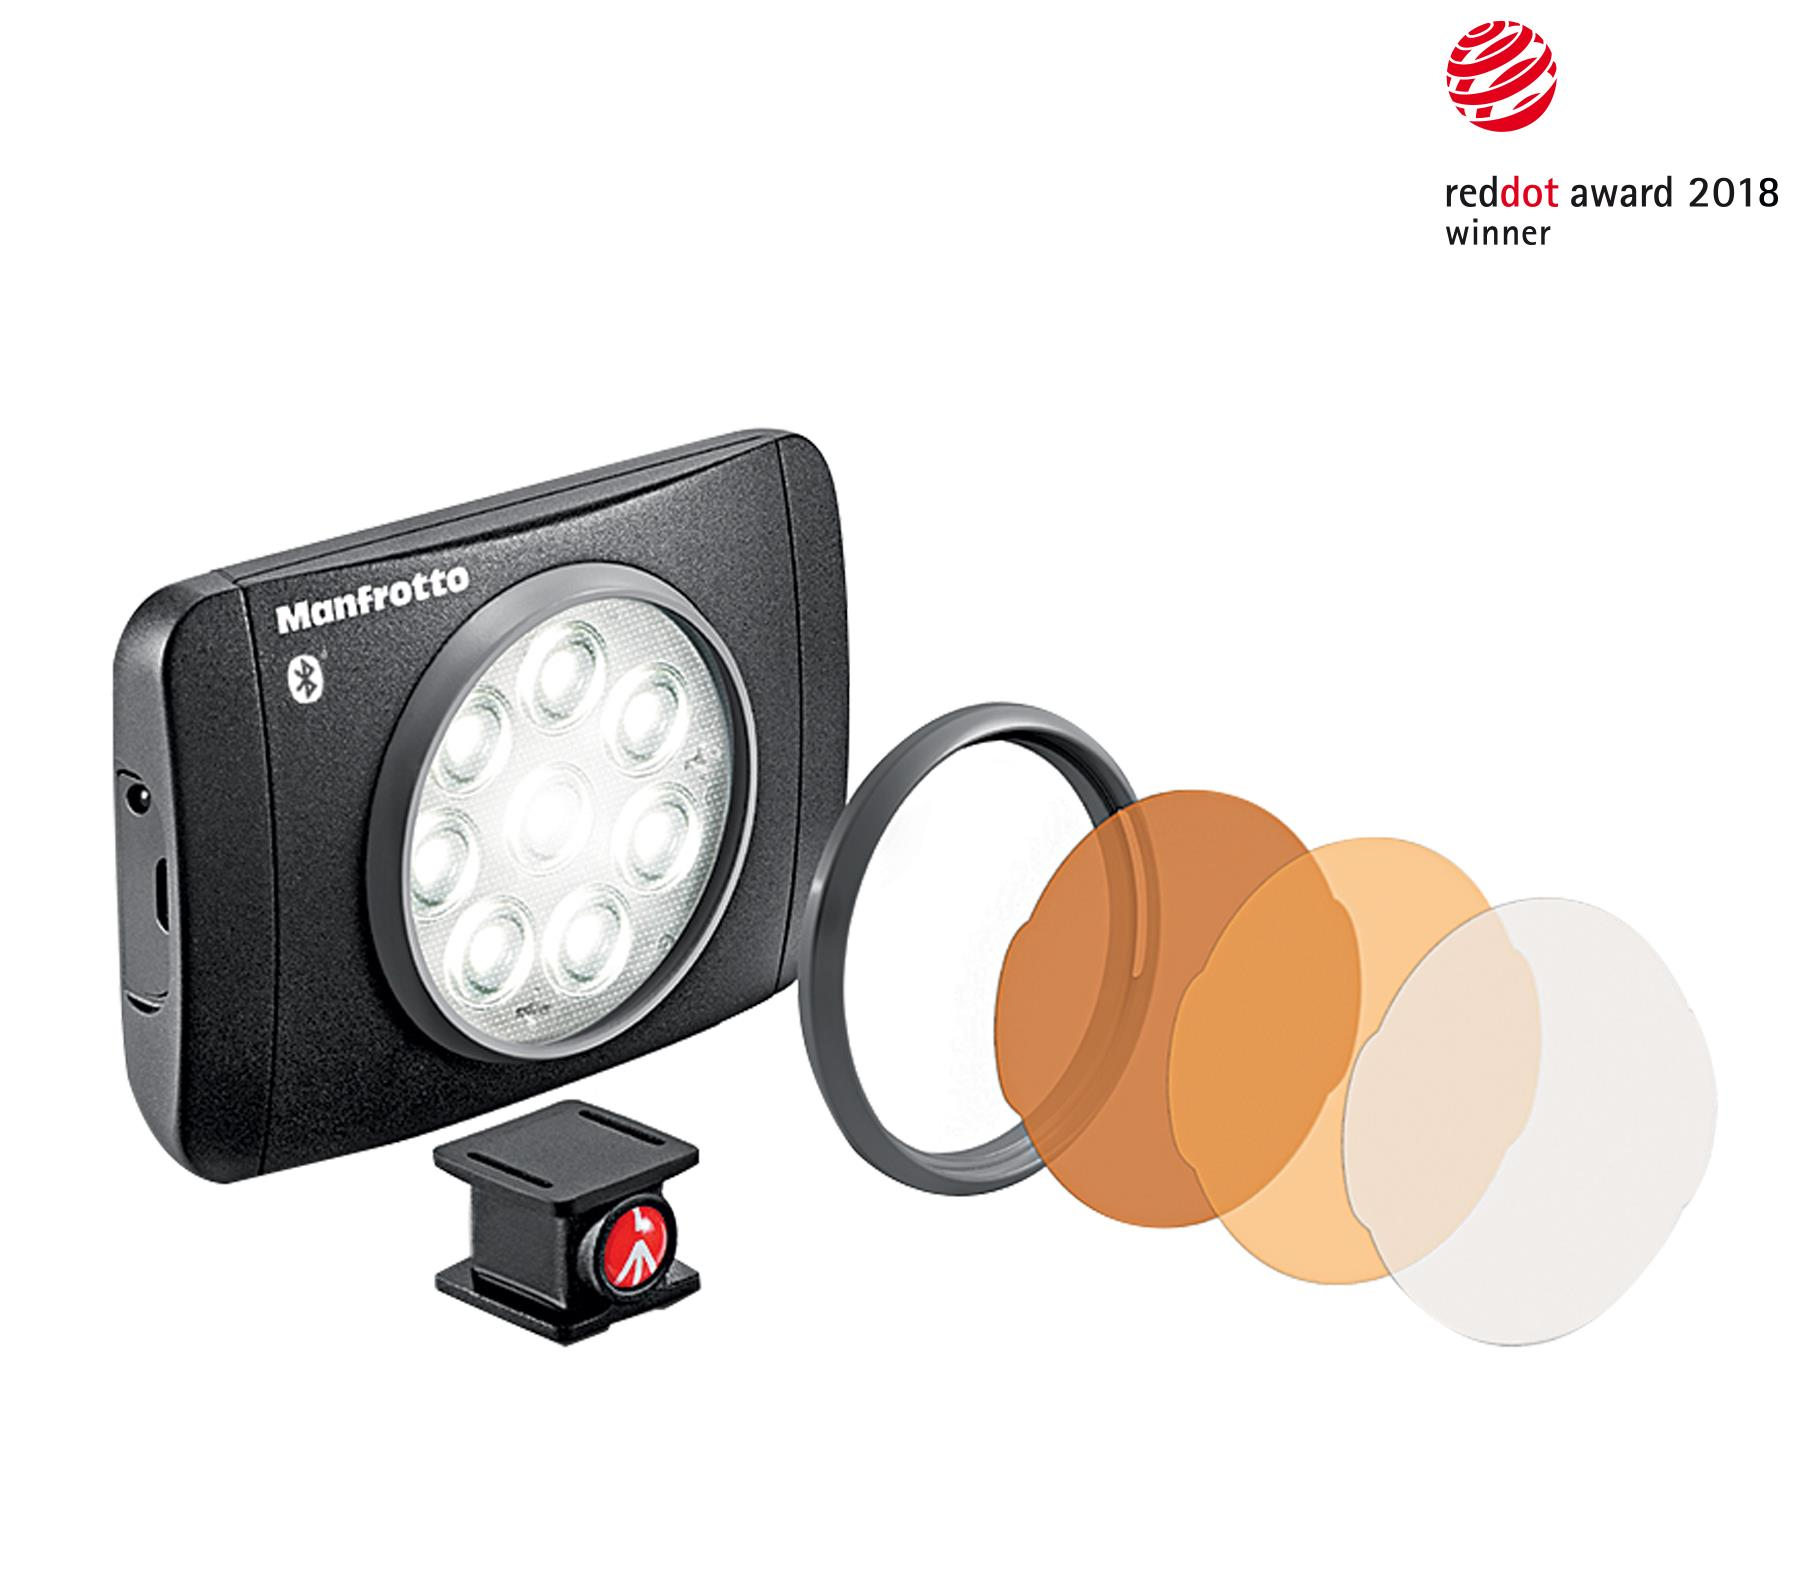 Manfrotto LED-Licht Lumimuse 8 mit Bluetooth Technologie